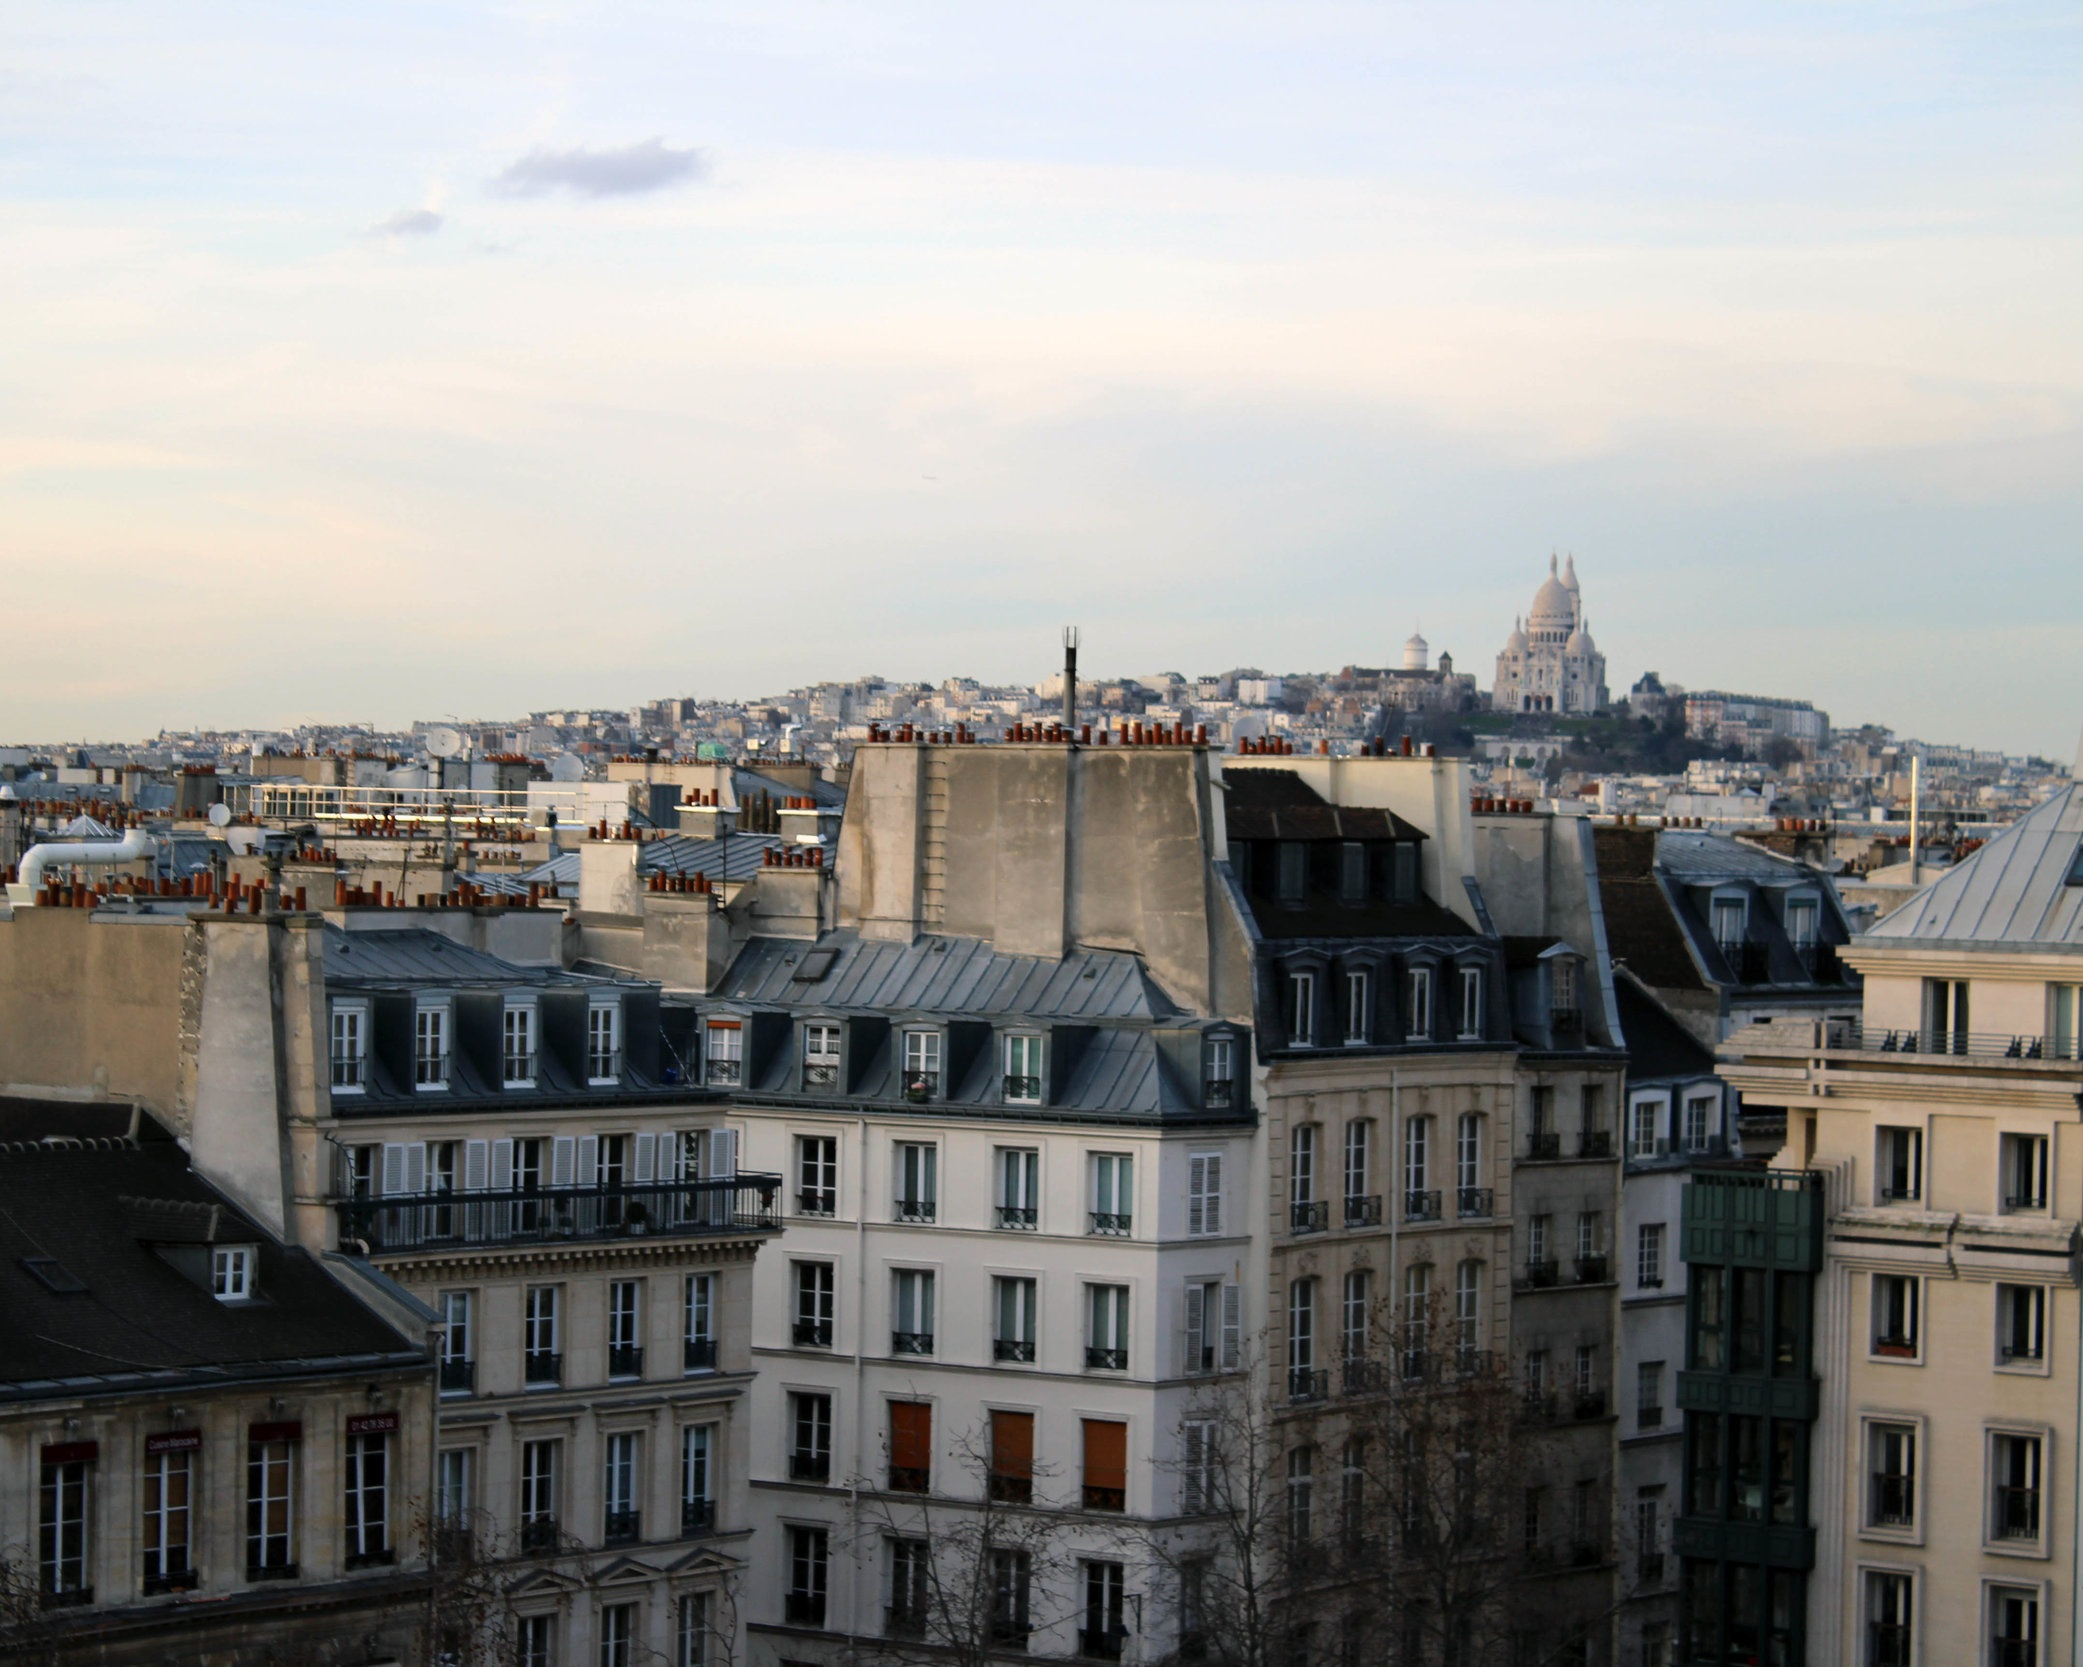 Paris rooftops. And the first European city I want to return to next year